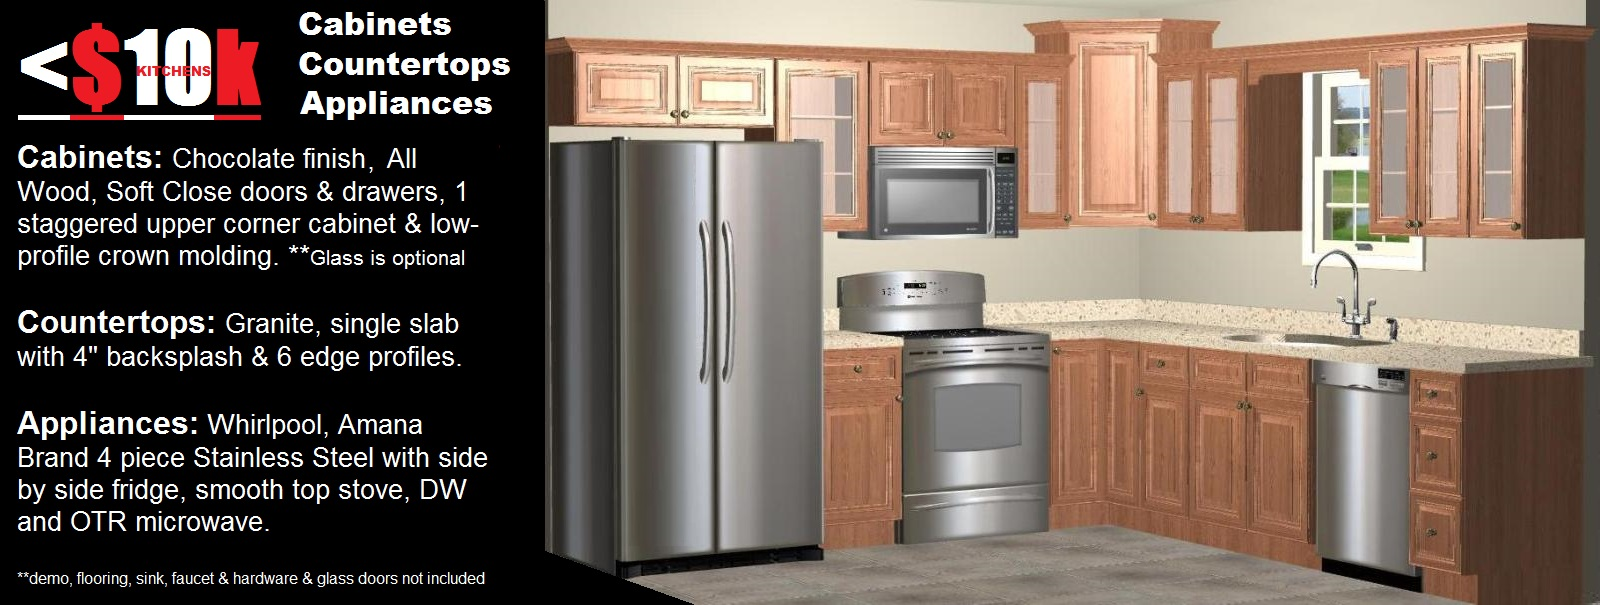 mesa phoenix az kitchen cabinets gallery kitchen remodeling phoenix az Discount Kitchen Cabinets Countertops Appliances